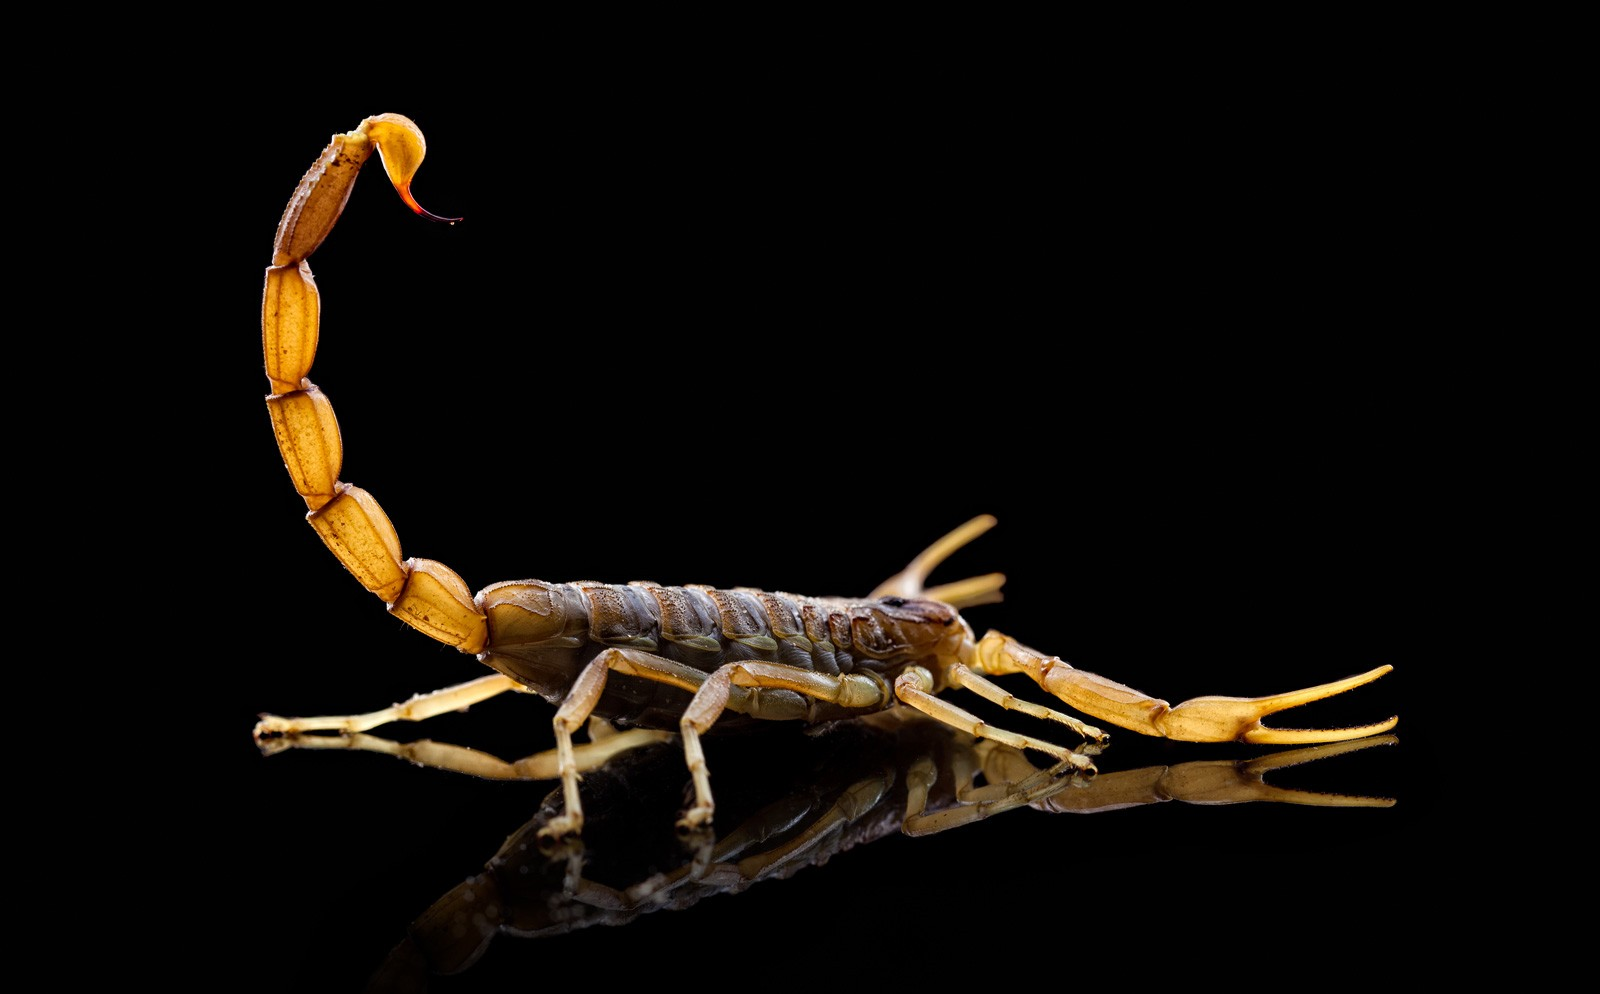 Scorpion Tattoo Ideas And Scorpion Meanings On Whats Your Sign